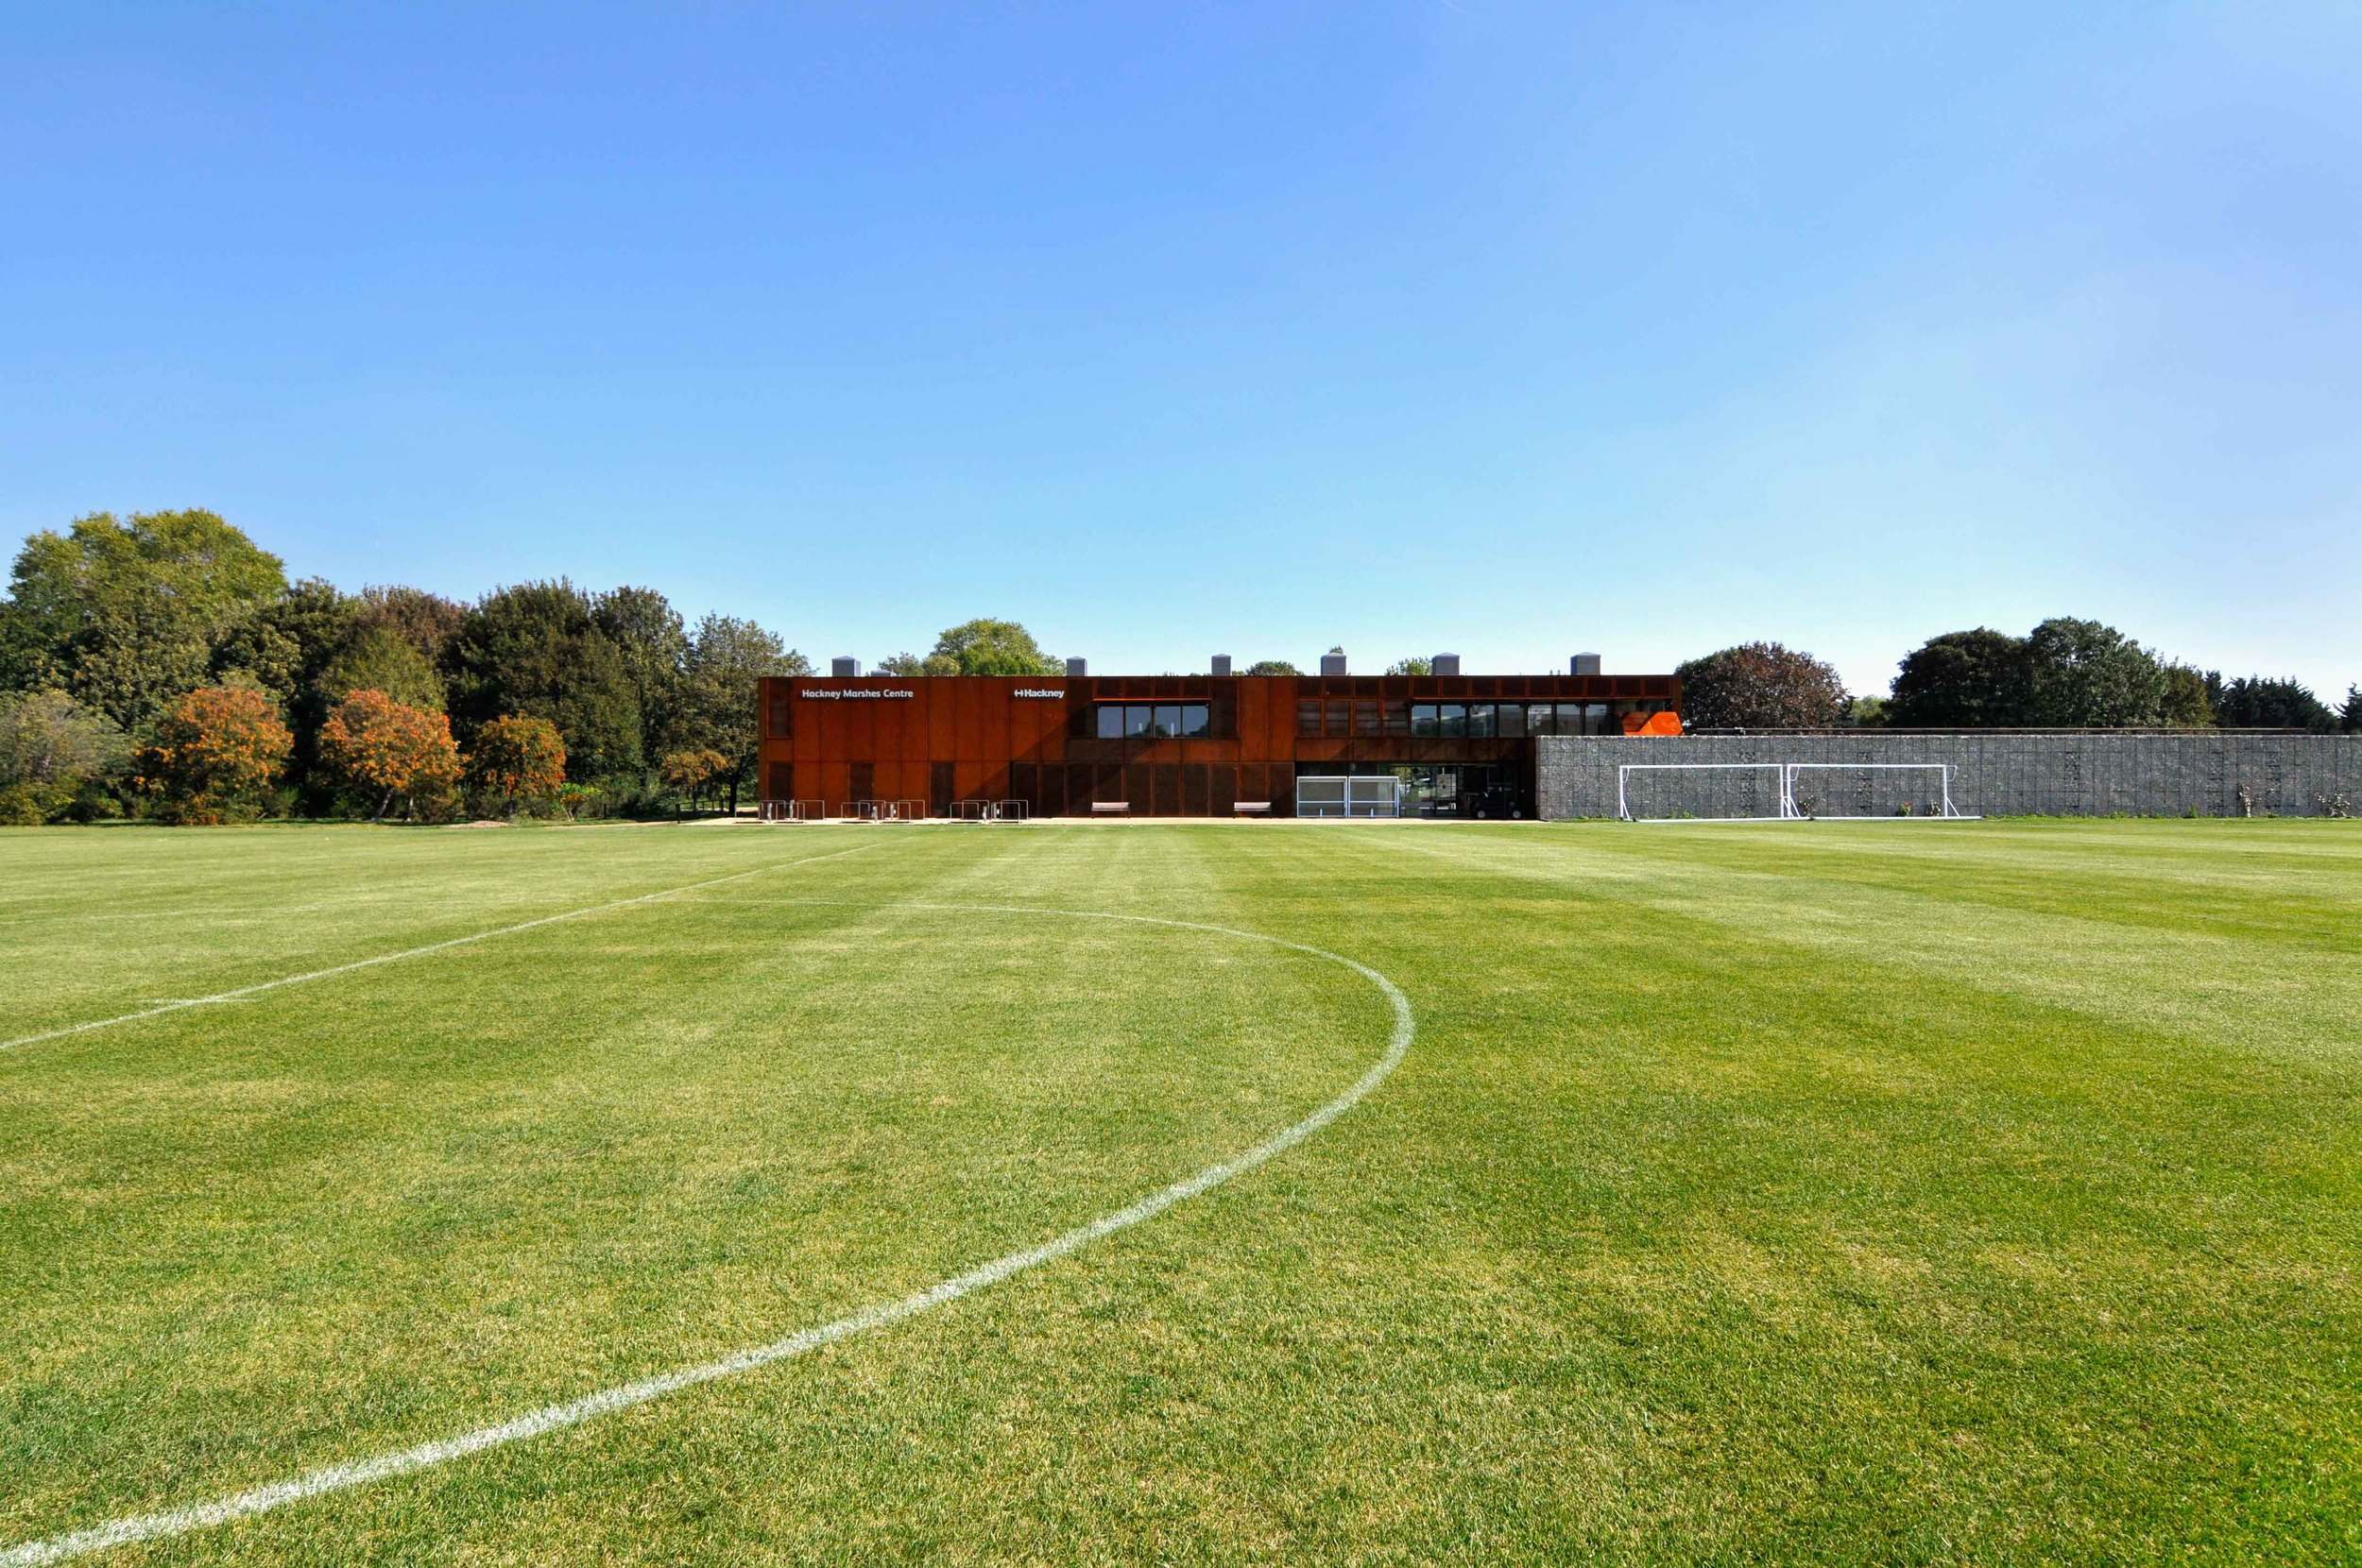 Hackney Marshes Pitch